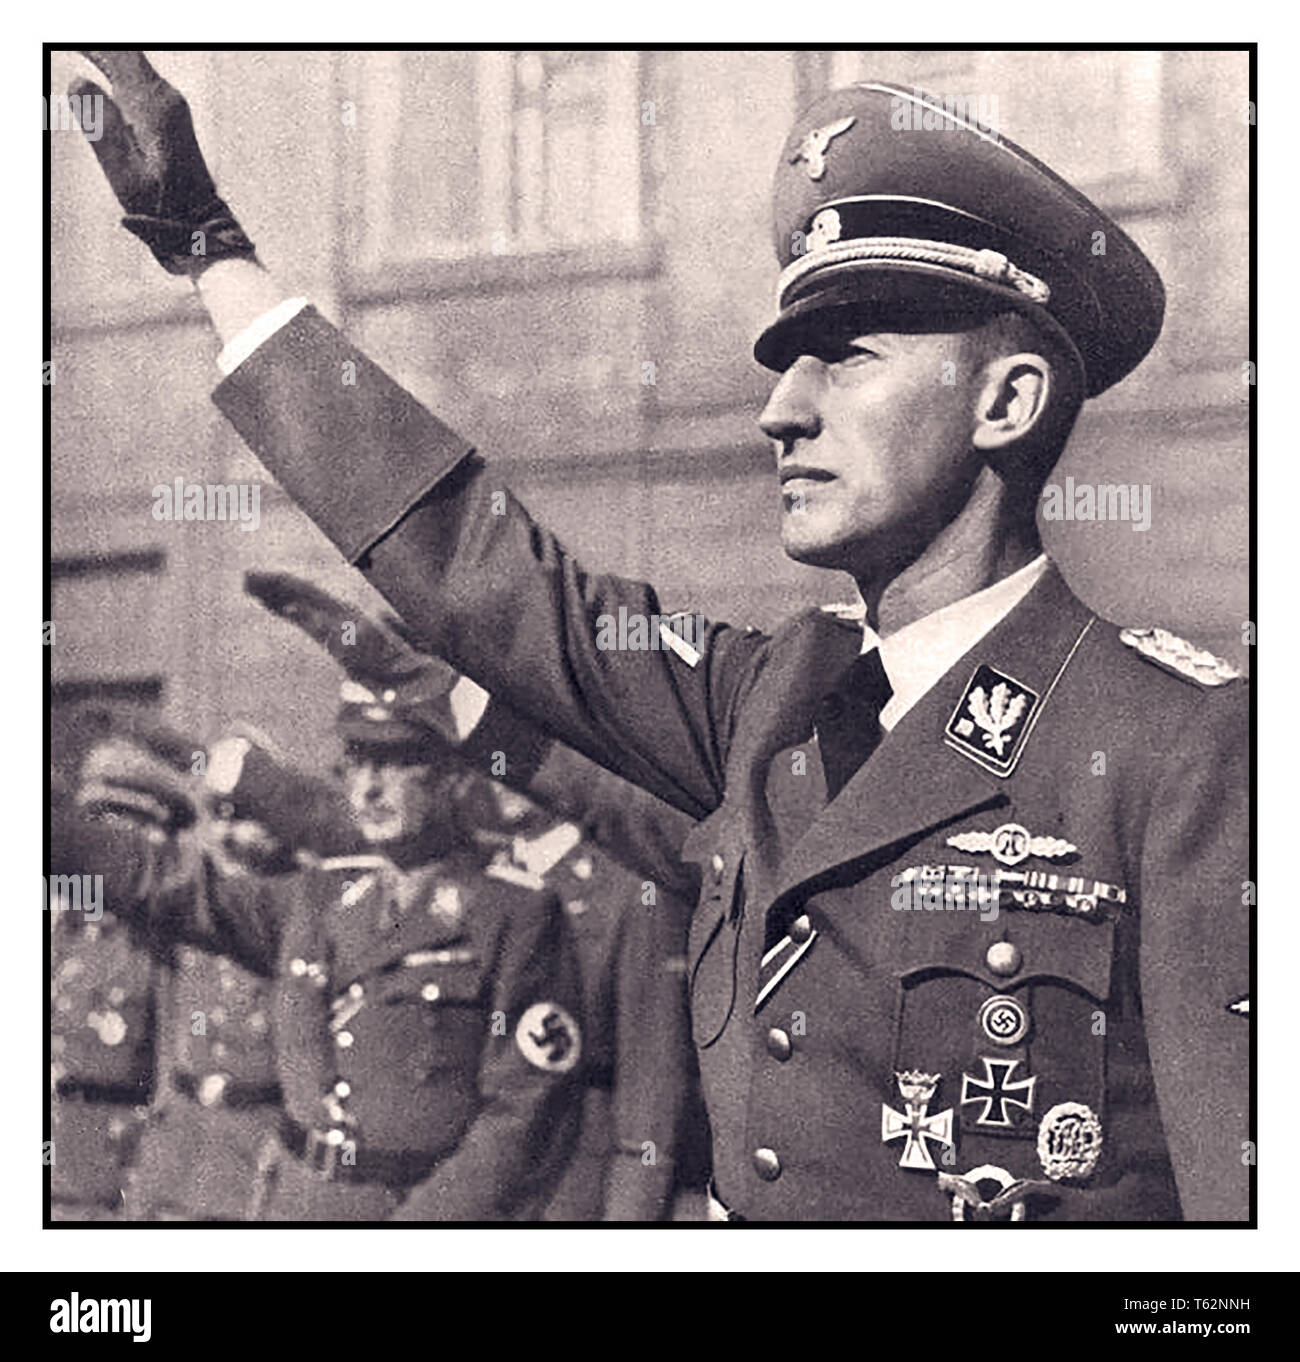 """WW2 REINHARD HEYDRICH 1940 Schutzstaffel (SS)-Obergruppenführer and General der Polizei Reinhard Heydrich, head of the Reichssicherheitshauptamt (Reich Main Security Office, RSHA), the combined security services of Nazi Germany, and acting Reichsprotektor of the Protectorate of Bohemia and Moravia Heydrich was one of the most powerful men in Nazi Germany and an important figure in the rise of Adolf Hitler; he was given overall charge of the """"Final Solution (Holocaust) to the Jewish question"""" in Europe He was rightly loathed by many and was assassinated by extremely brave Czech exile soldiers. Stock Photo"""